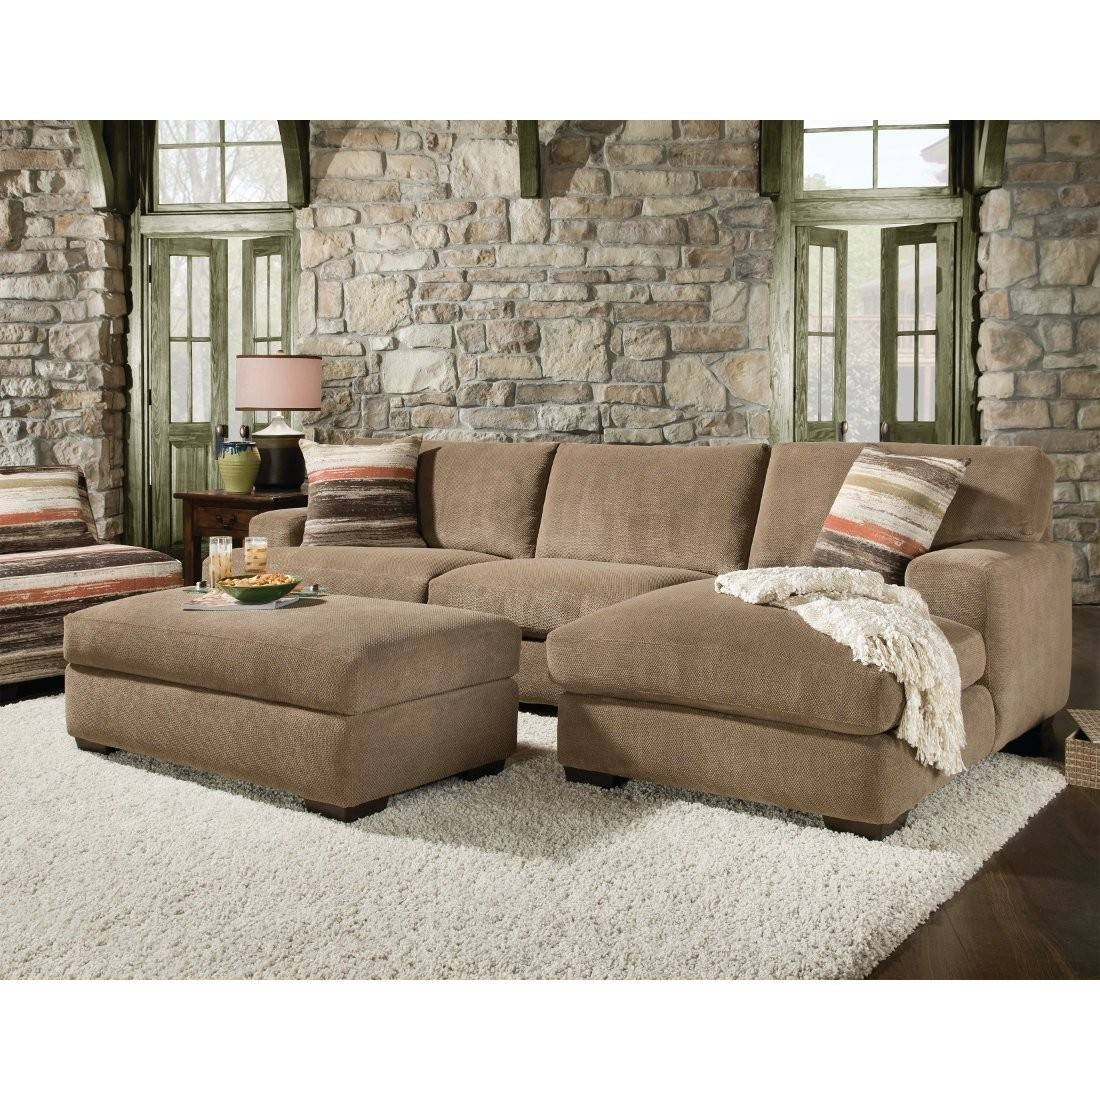 Furniture: Microfiber Chaise Lounge For Comfortable Sofa Design throughout Large Sofa Chairs (Image 15 of 30)